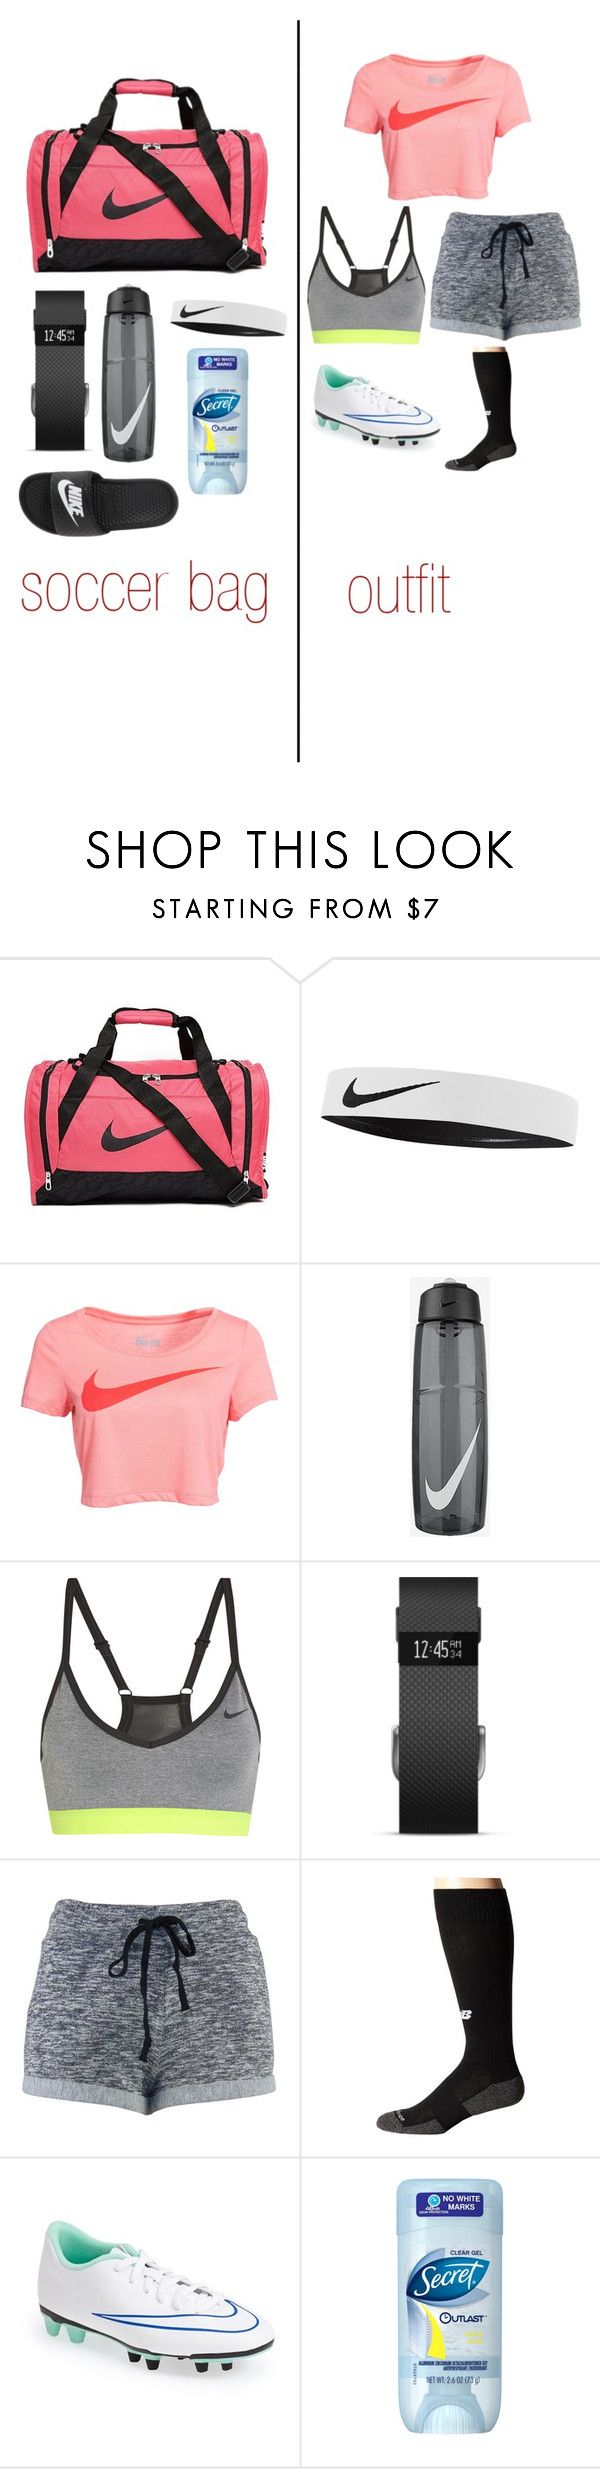 Designer Clothes Shoes Bags For Women Ssense Soccer Outfit Soccer Outfits Sports Day Outfit